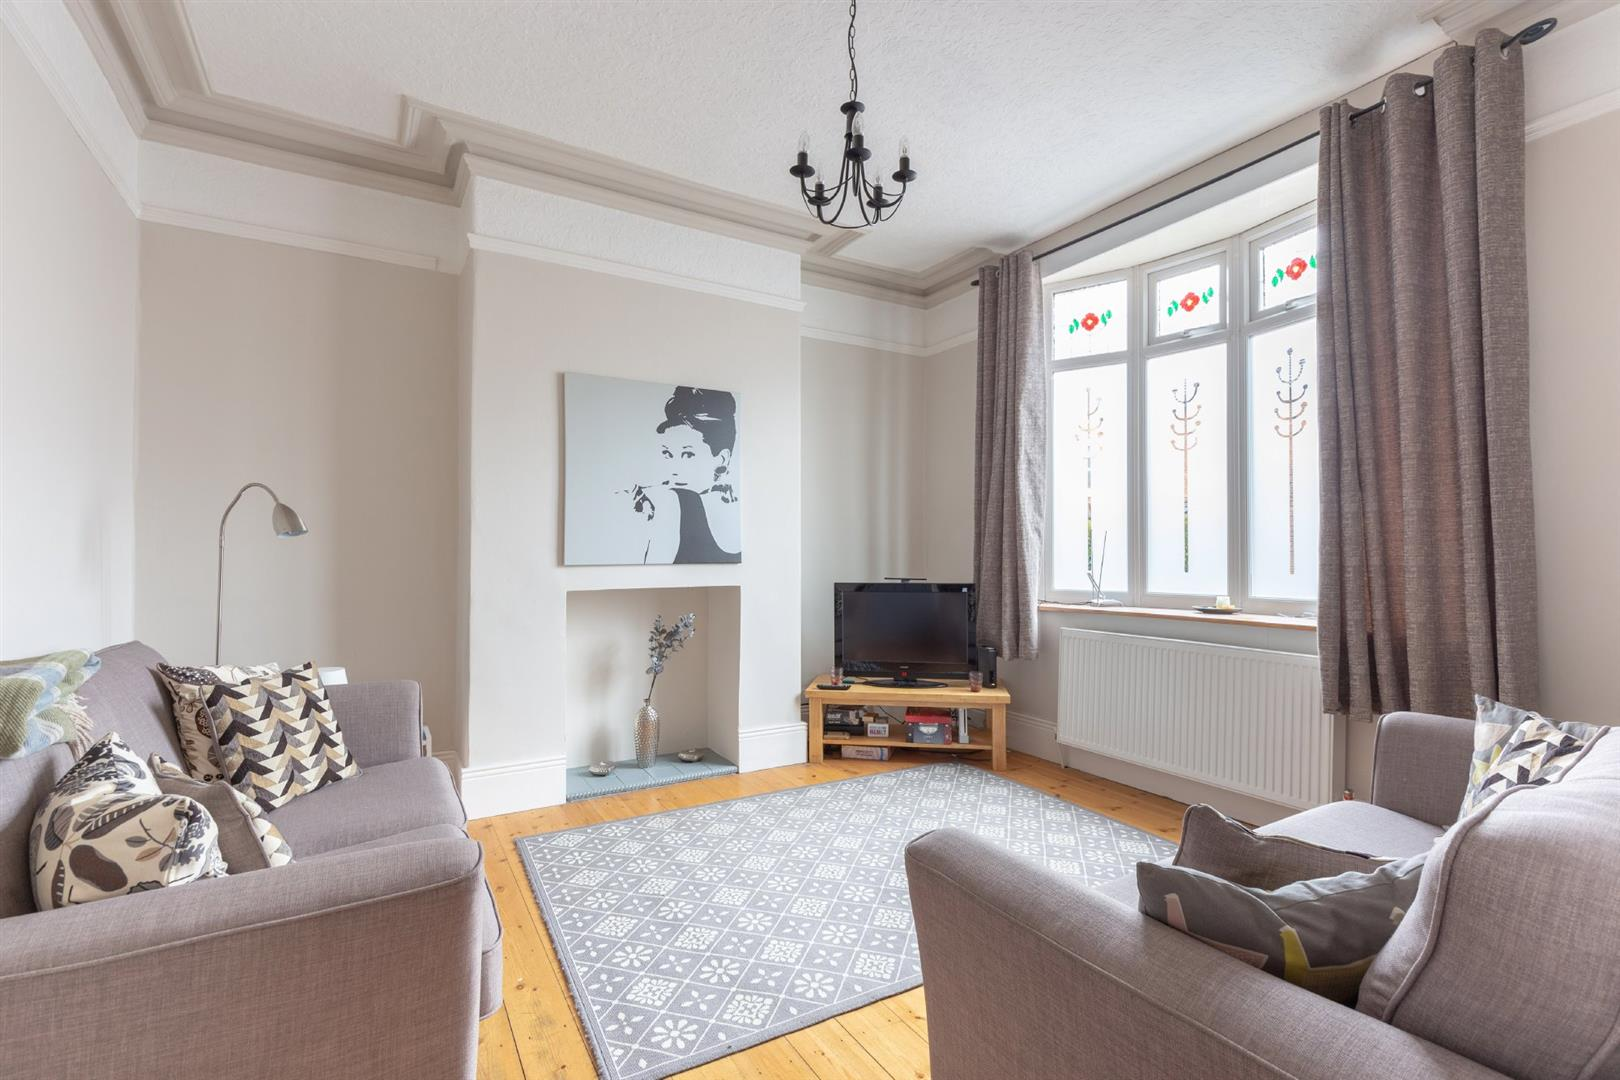 4 bed terraced house to rent in Newcastle Upon Tyne, NE6 5XQ  - Property Image 1